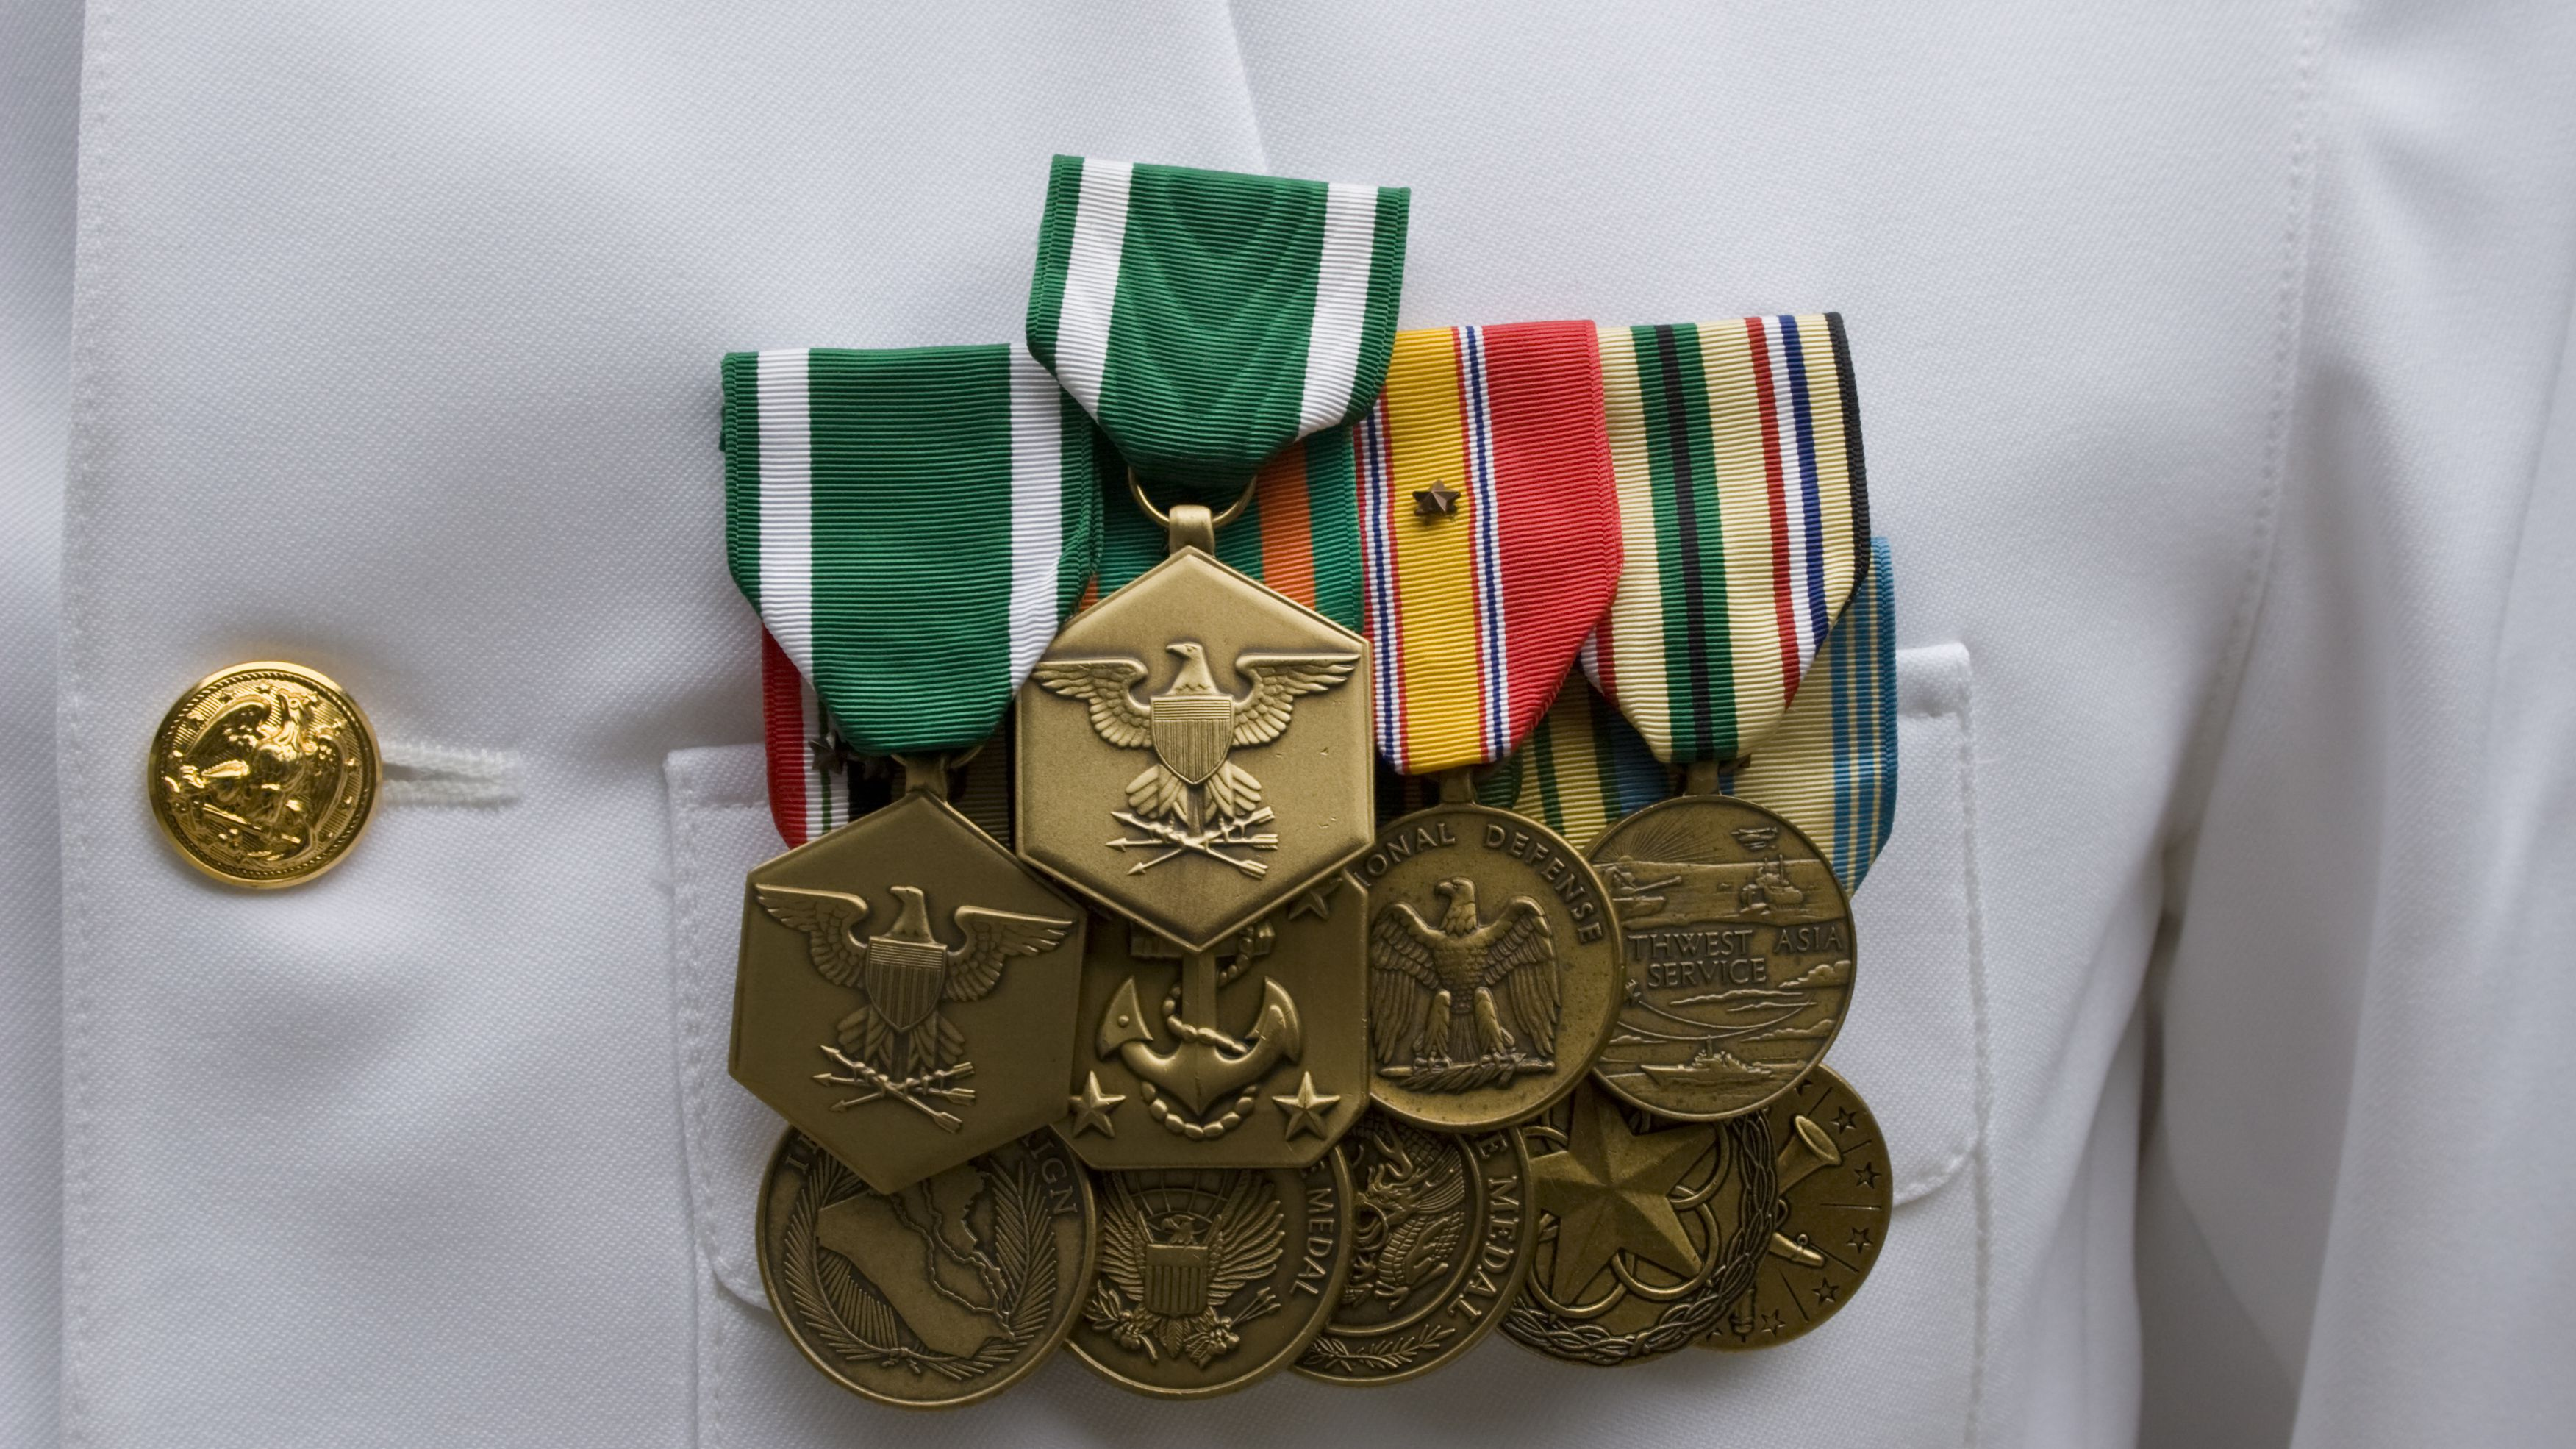 Army Commendation Medal Criteria and Background